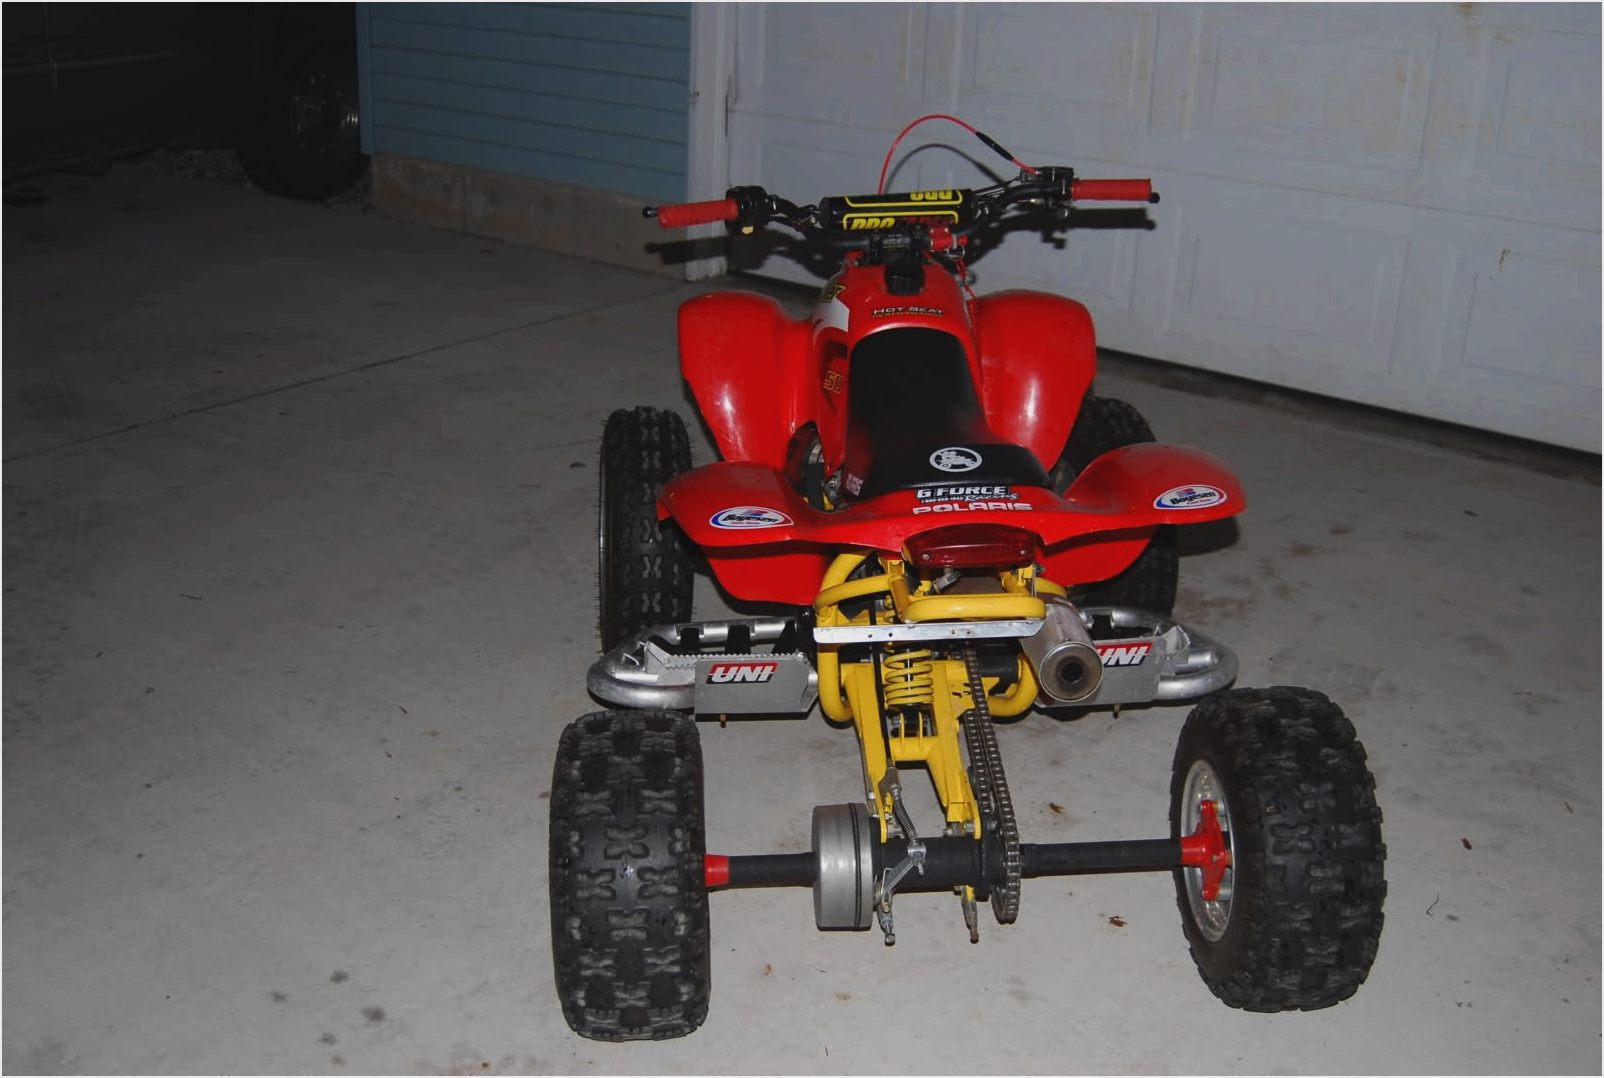 polaris scrambler 500 4x4 pics specs and list of seriess by year. Black Bedroom Furniture Sets. Home Design Ideas